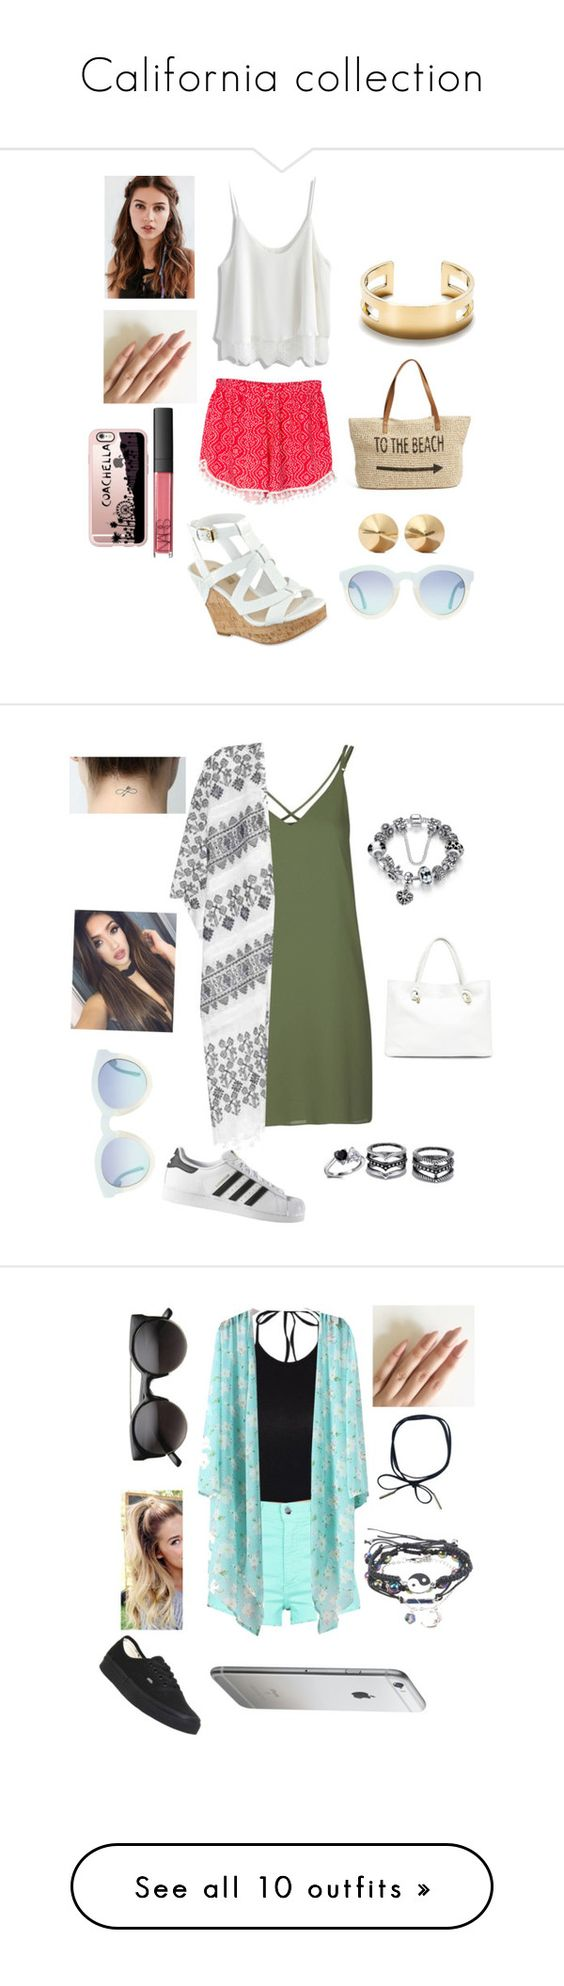 """California collection"" by lovely-leah-leah ❤ liked on Polyvore featuring Chicwish, WithChic, GUESS, Straw Studios, Tiffany & Co., Eddie Borgo, REGALROSE, NARS Cosmetics, Casetify and art"